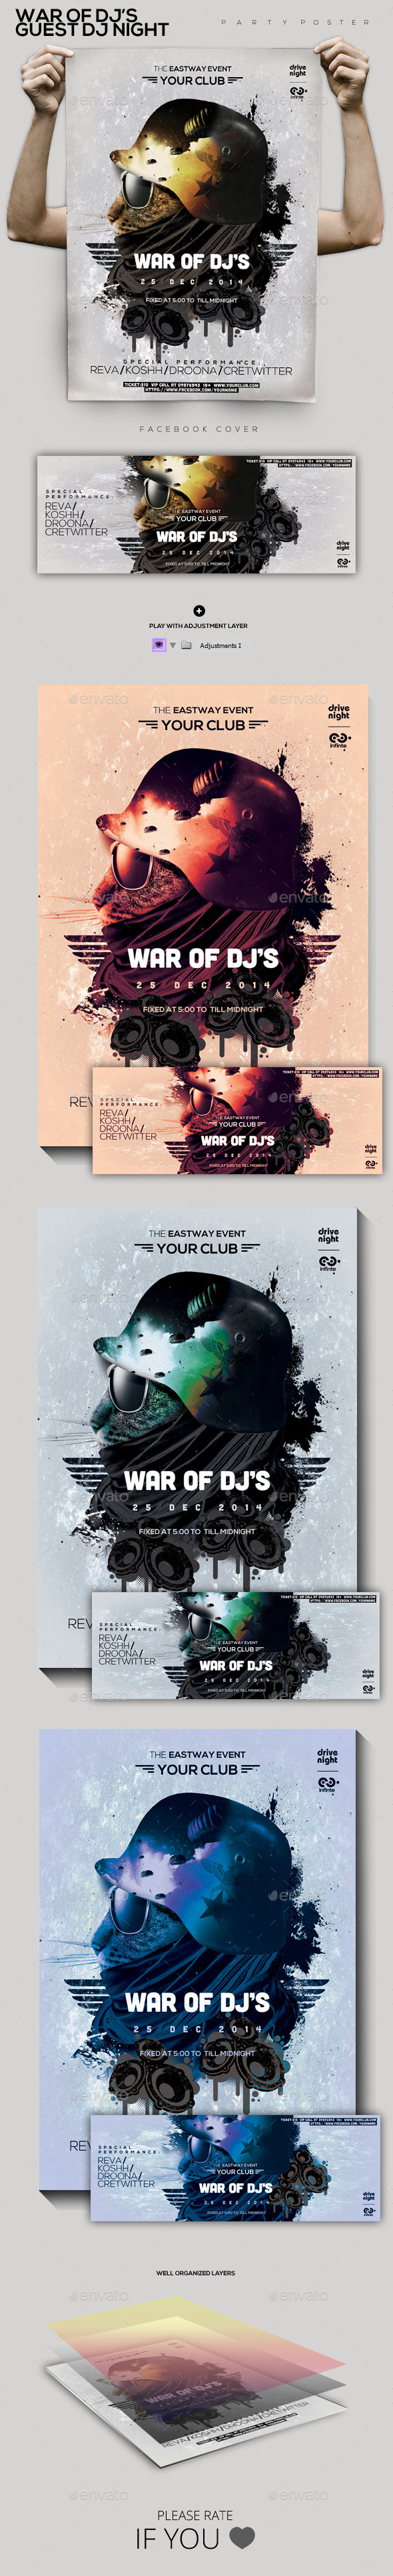 War Of Guest Dj's Party Flyer/Poster - Clubs & Parties Events